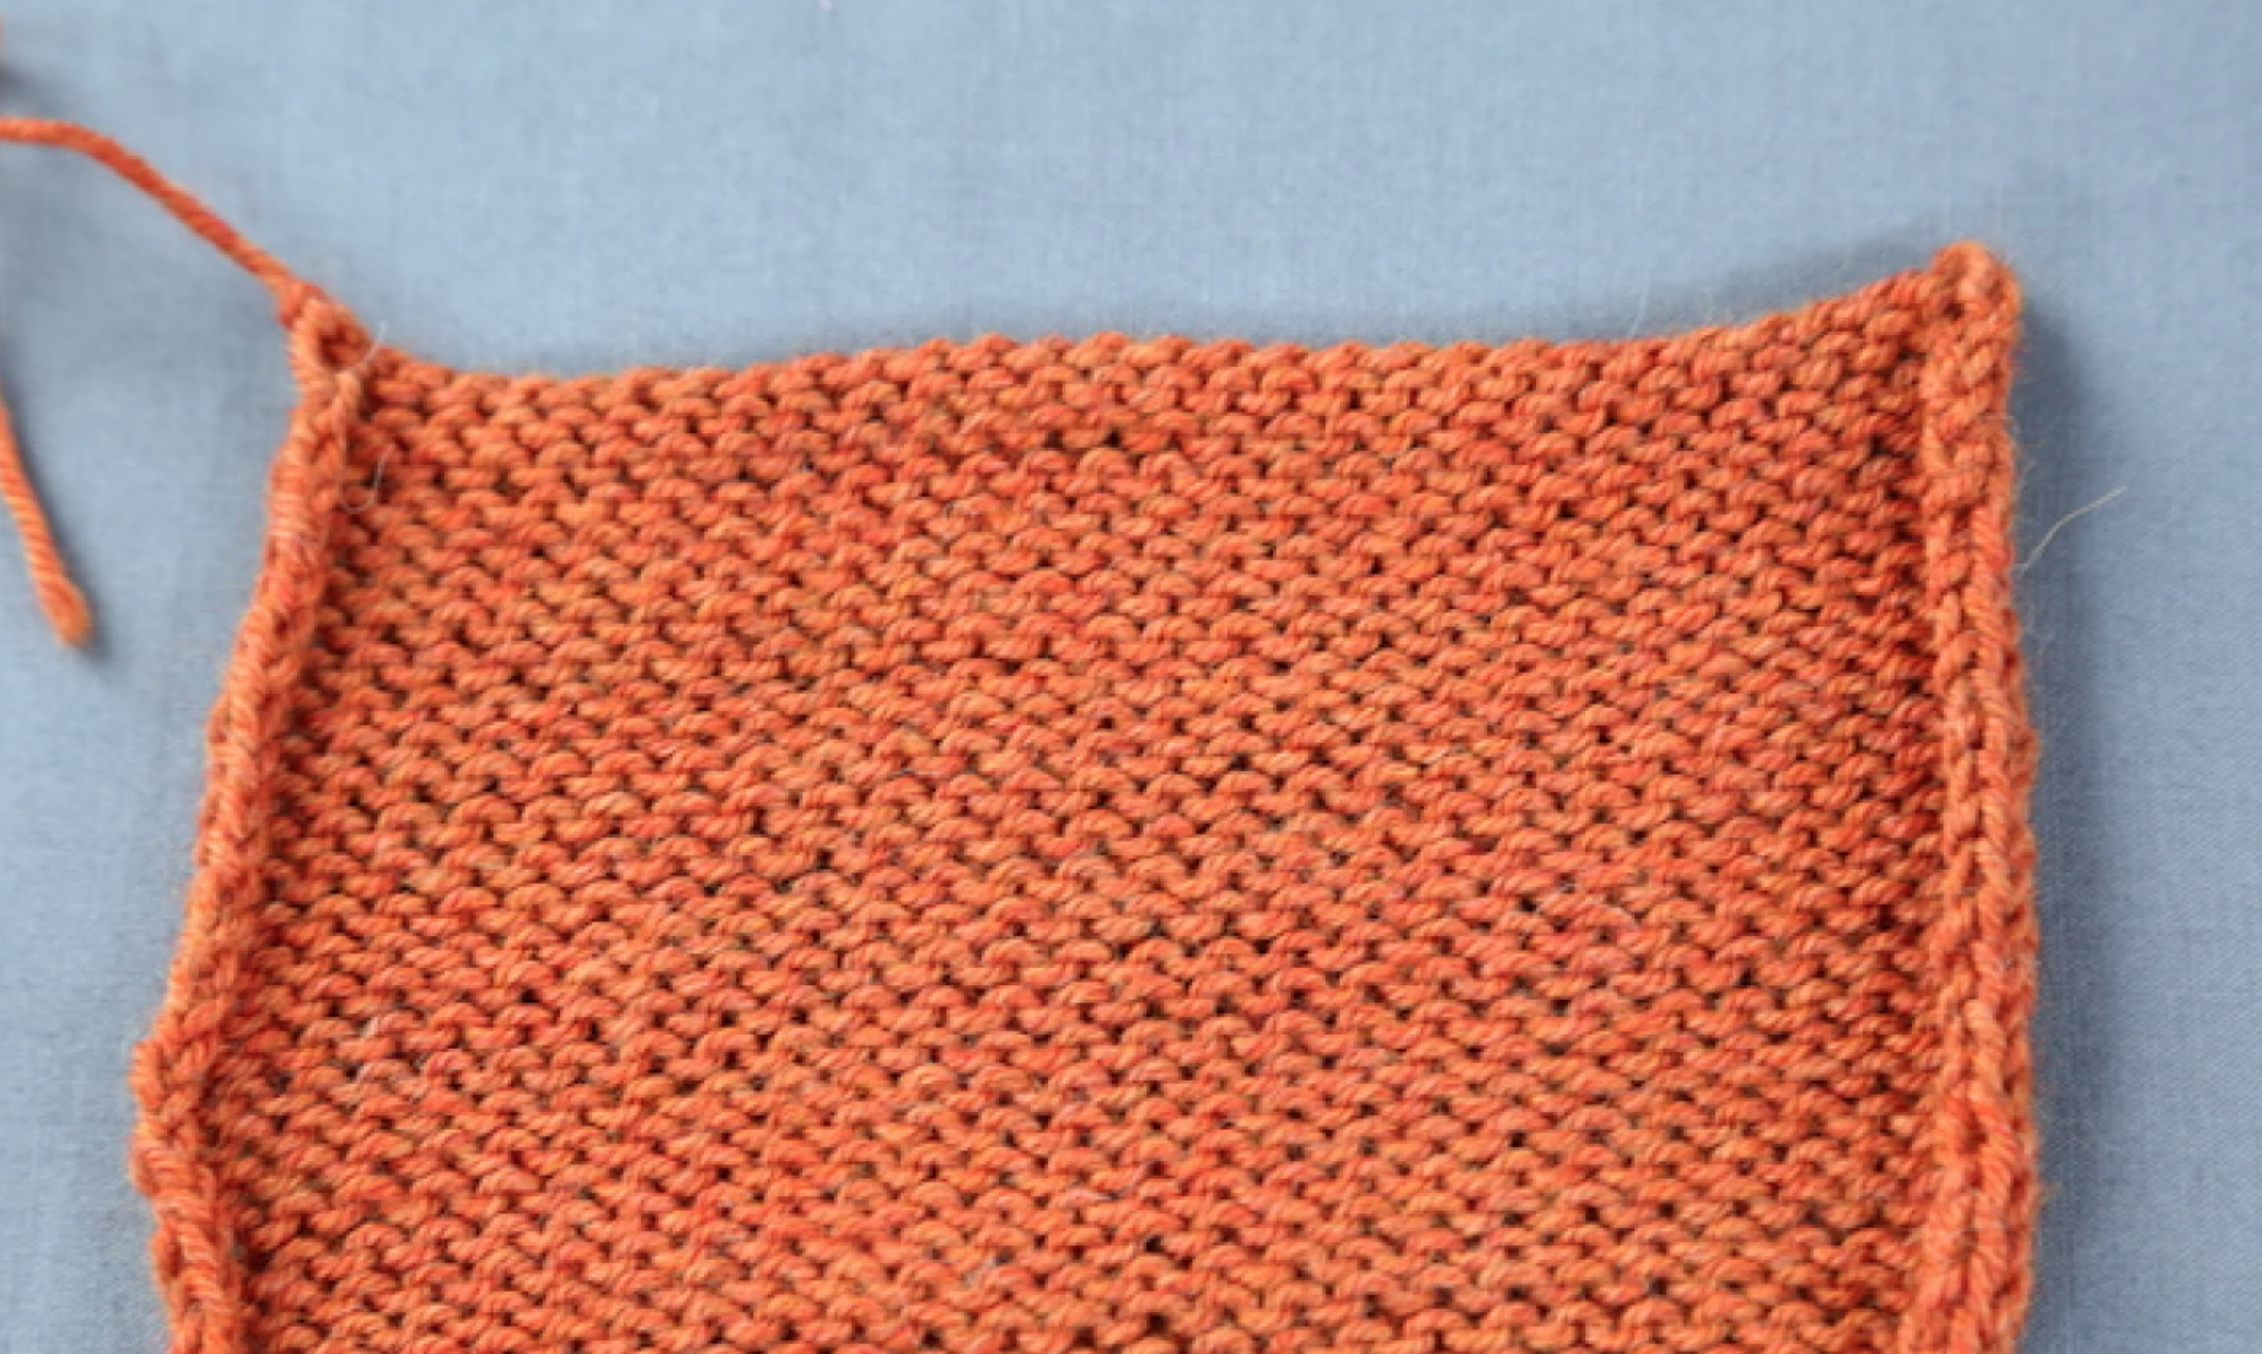 curling stockinette stitch swatch